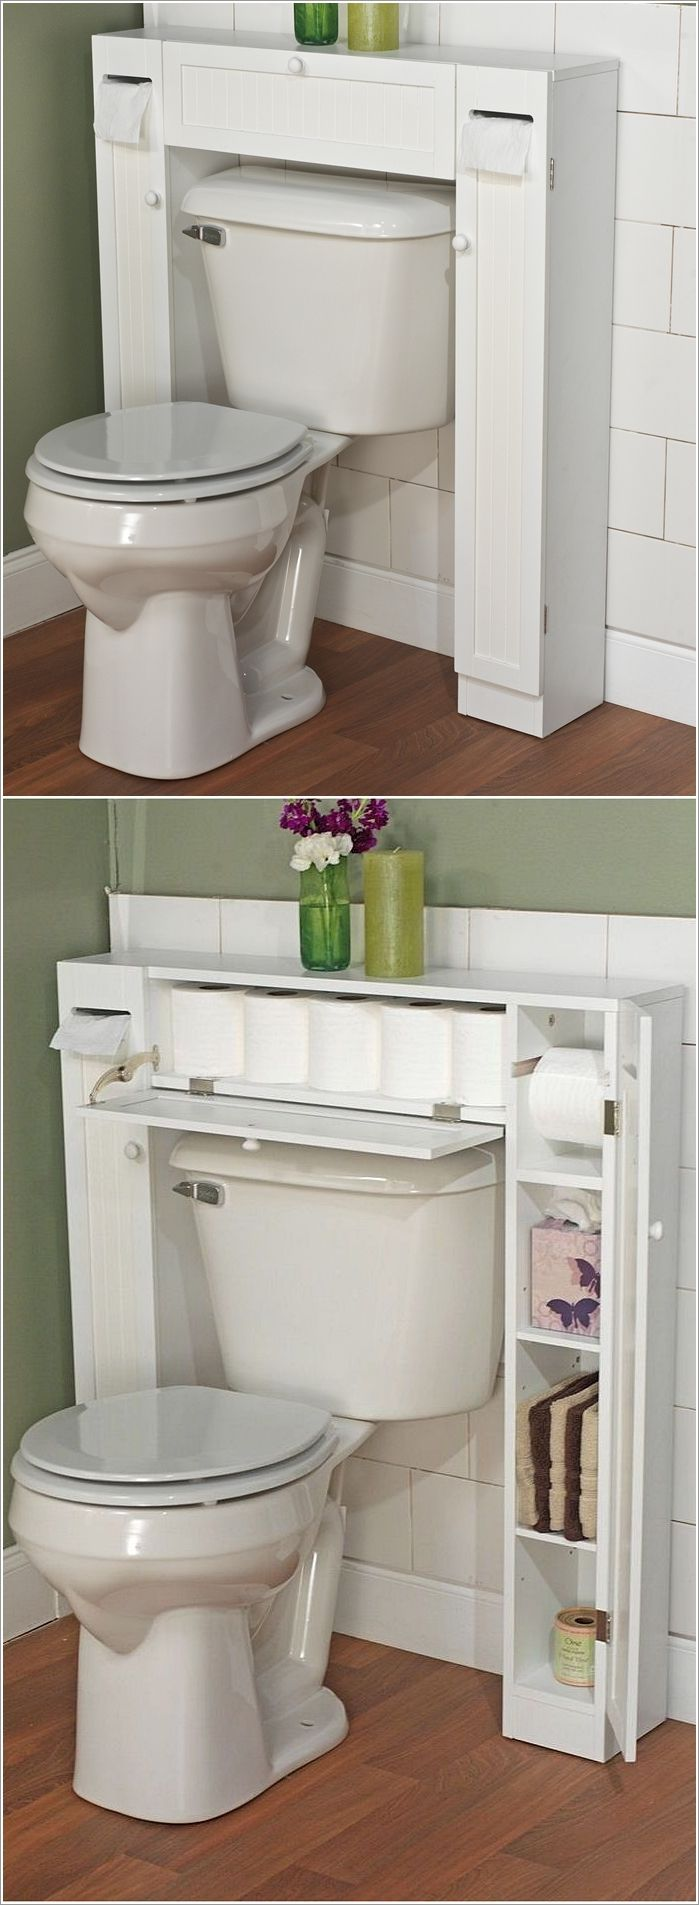 10 smart ideas to store more in your bathroom  house